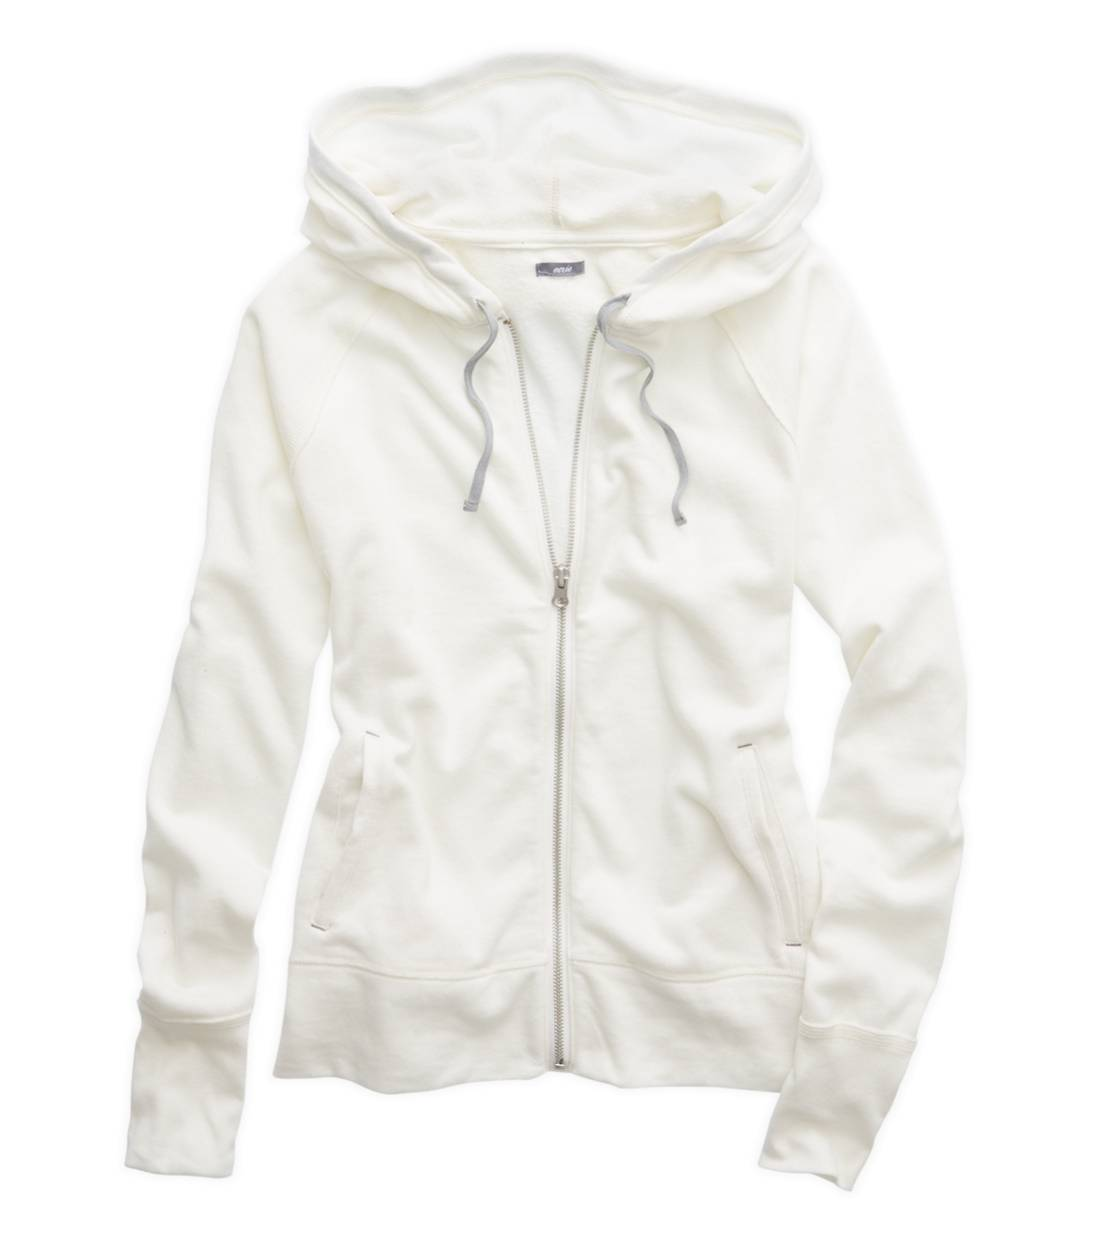 Soft Muslin Aerie Full Zip Hooded Sweatshirt